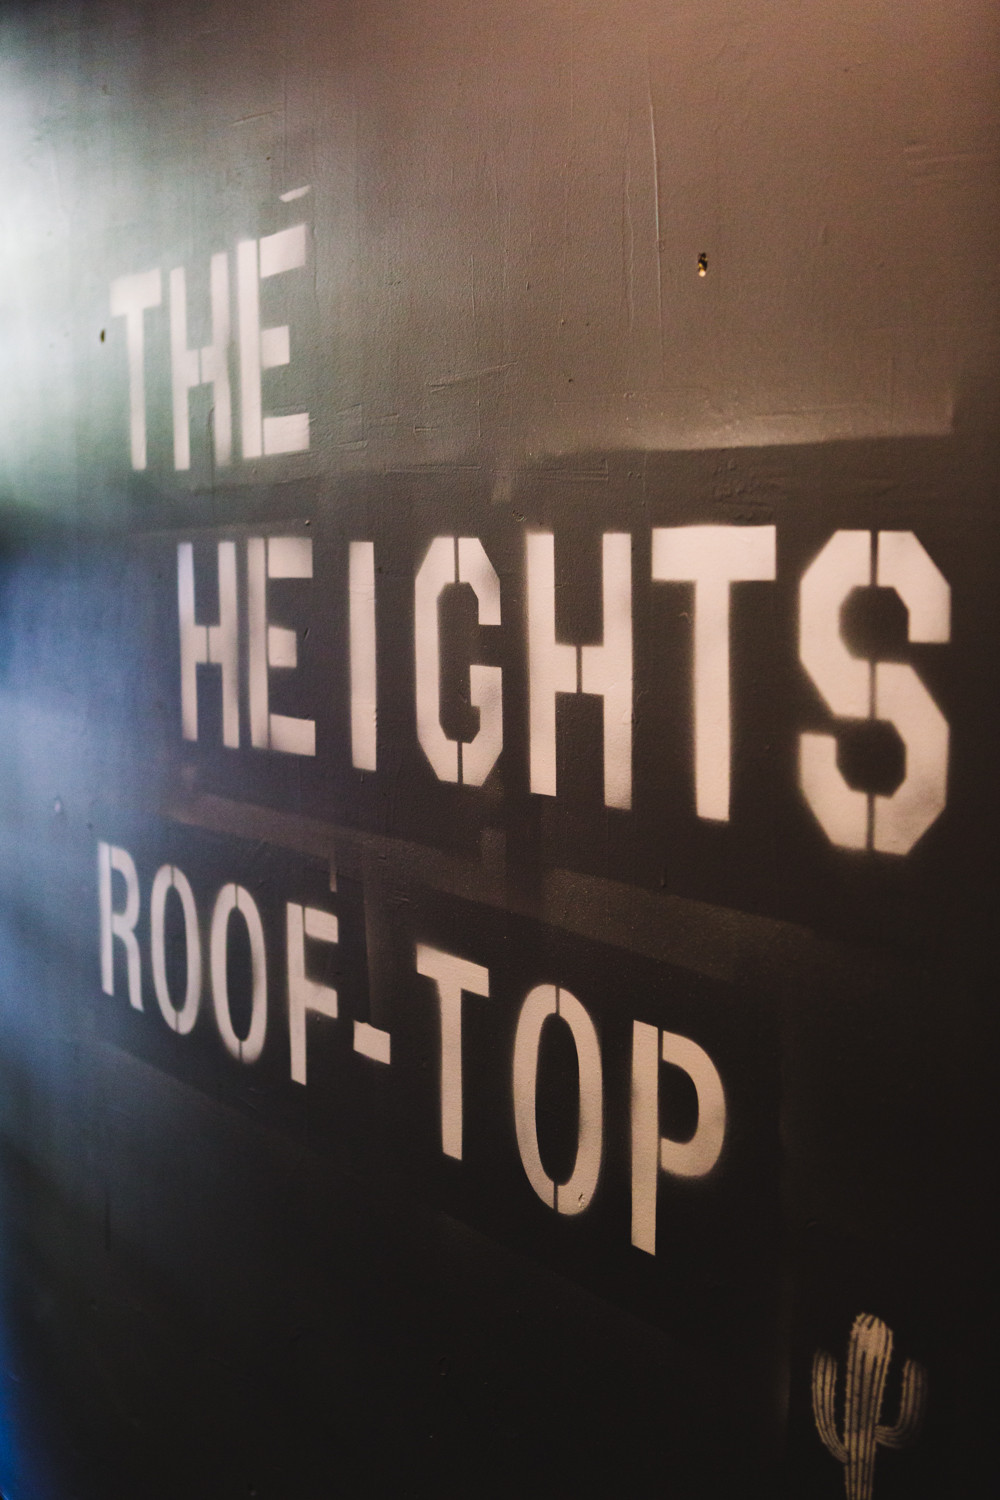 A sign at the entrance to the Rooftop